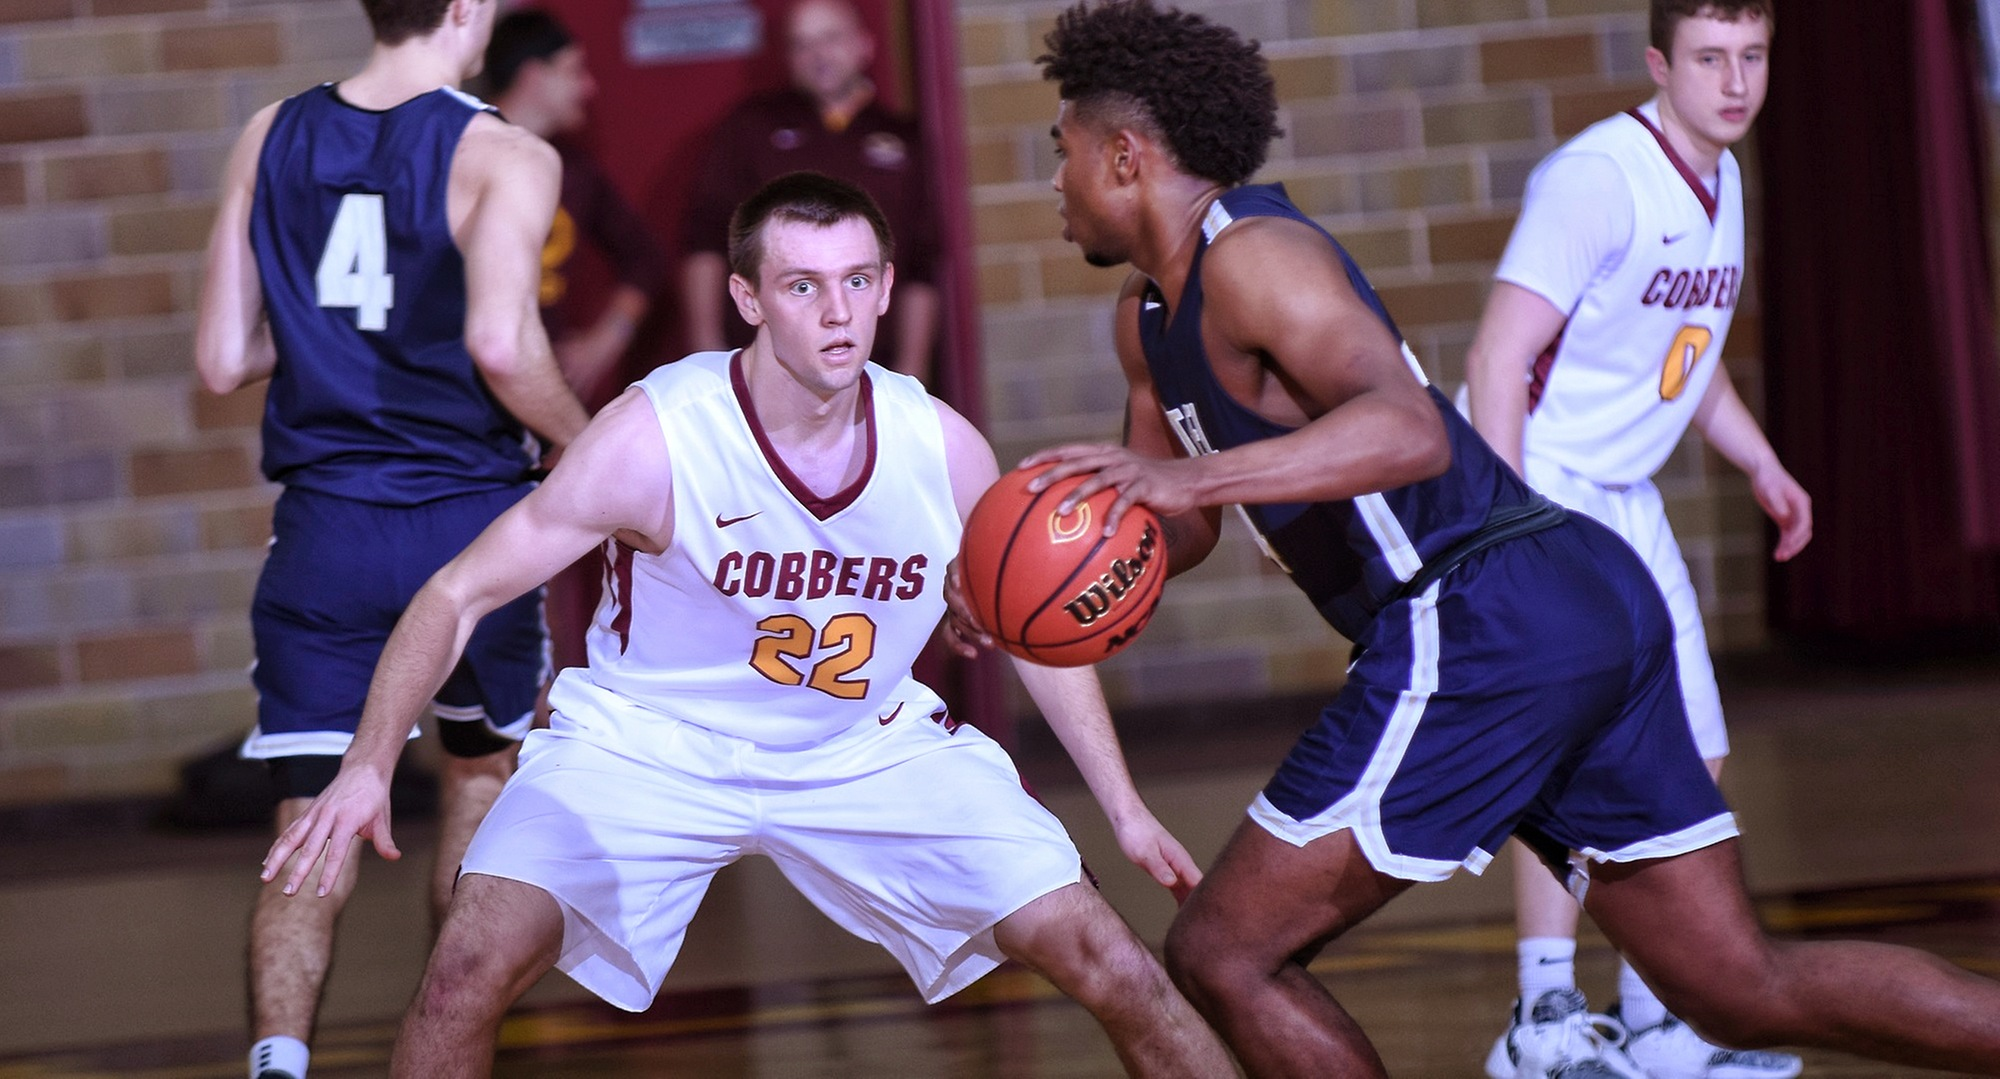 Junior Jacob Fredrickson scored a career-high 15 points in the Cobbers' game with Bethel.